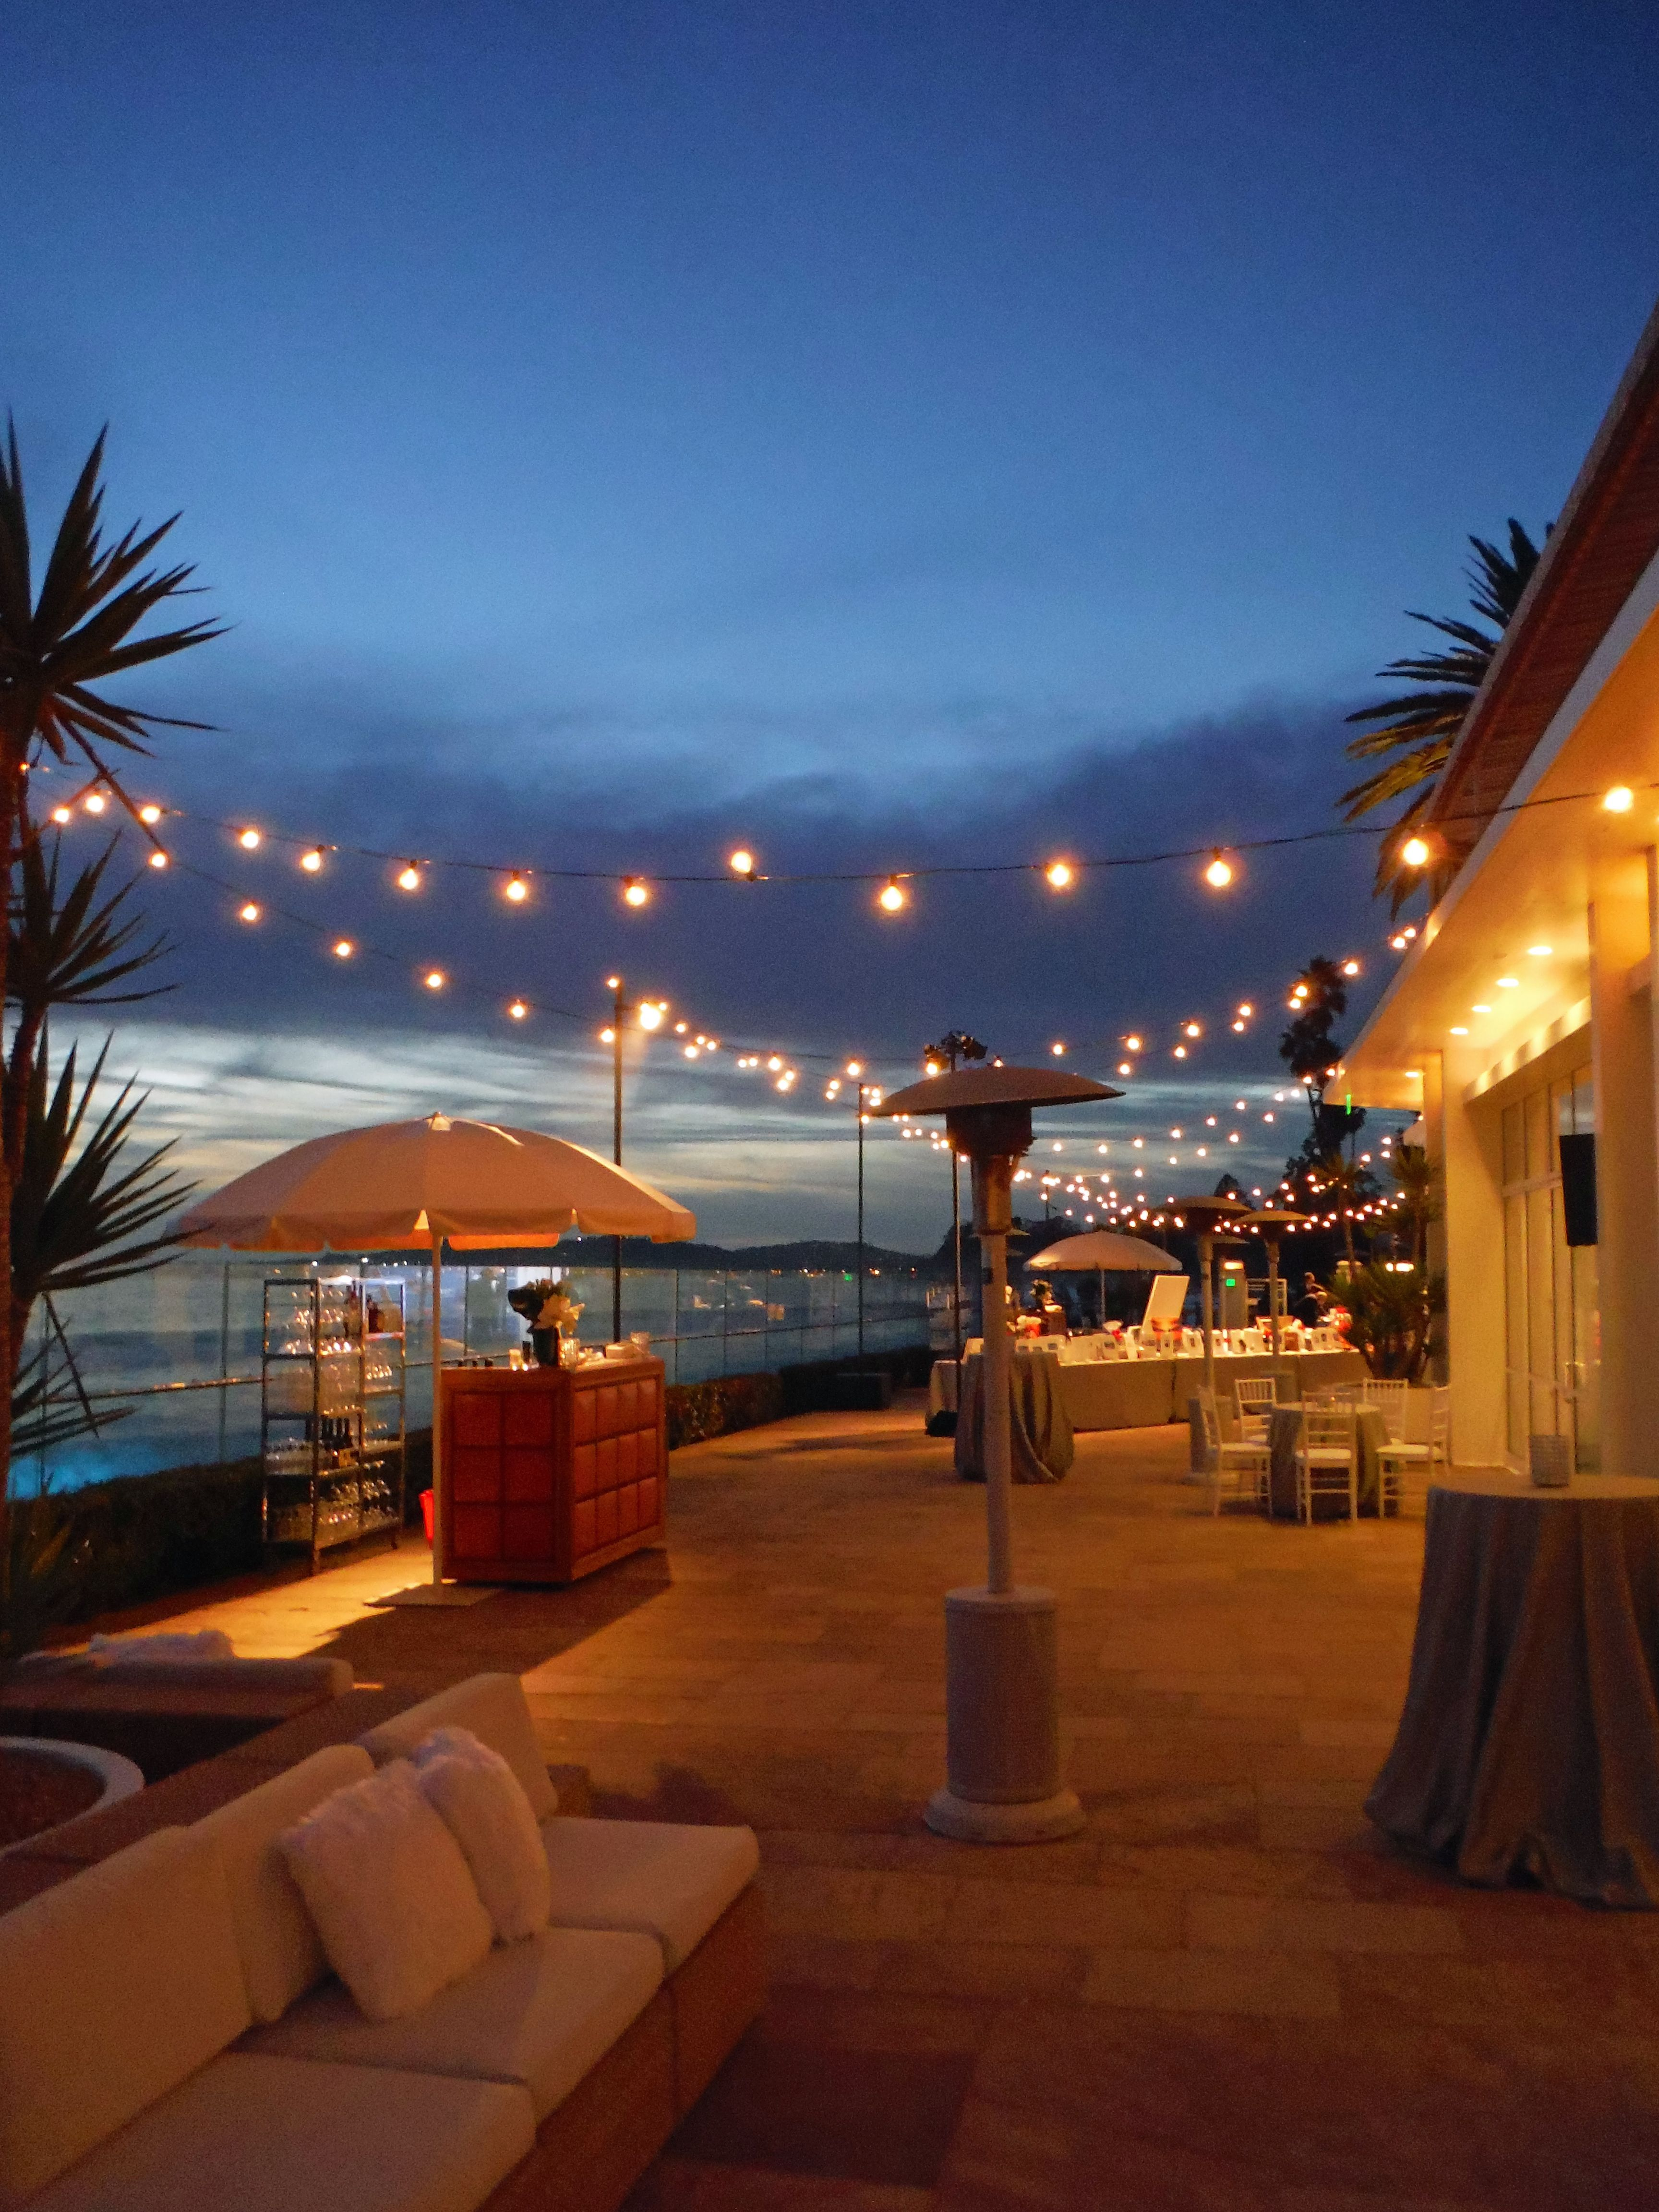 The Coral Casino Beach Cabana Club In Santa Barbara California